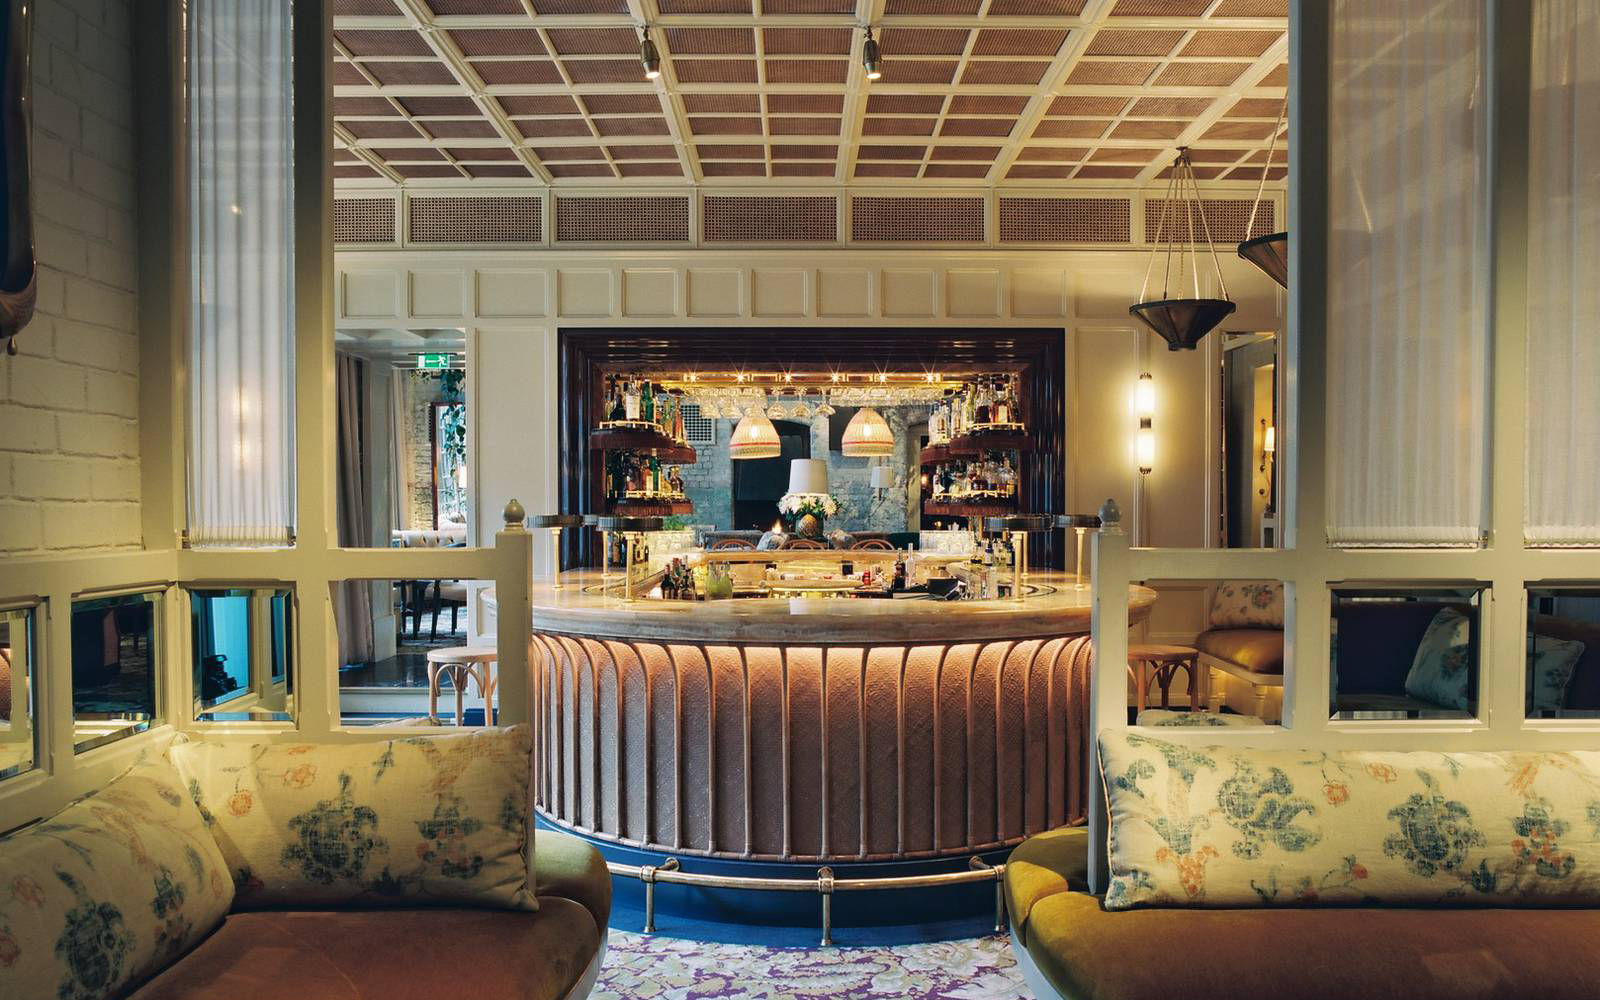 Chiltern firehouse a marylebone exclusive my aesthesis for Rooms under the garden